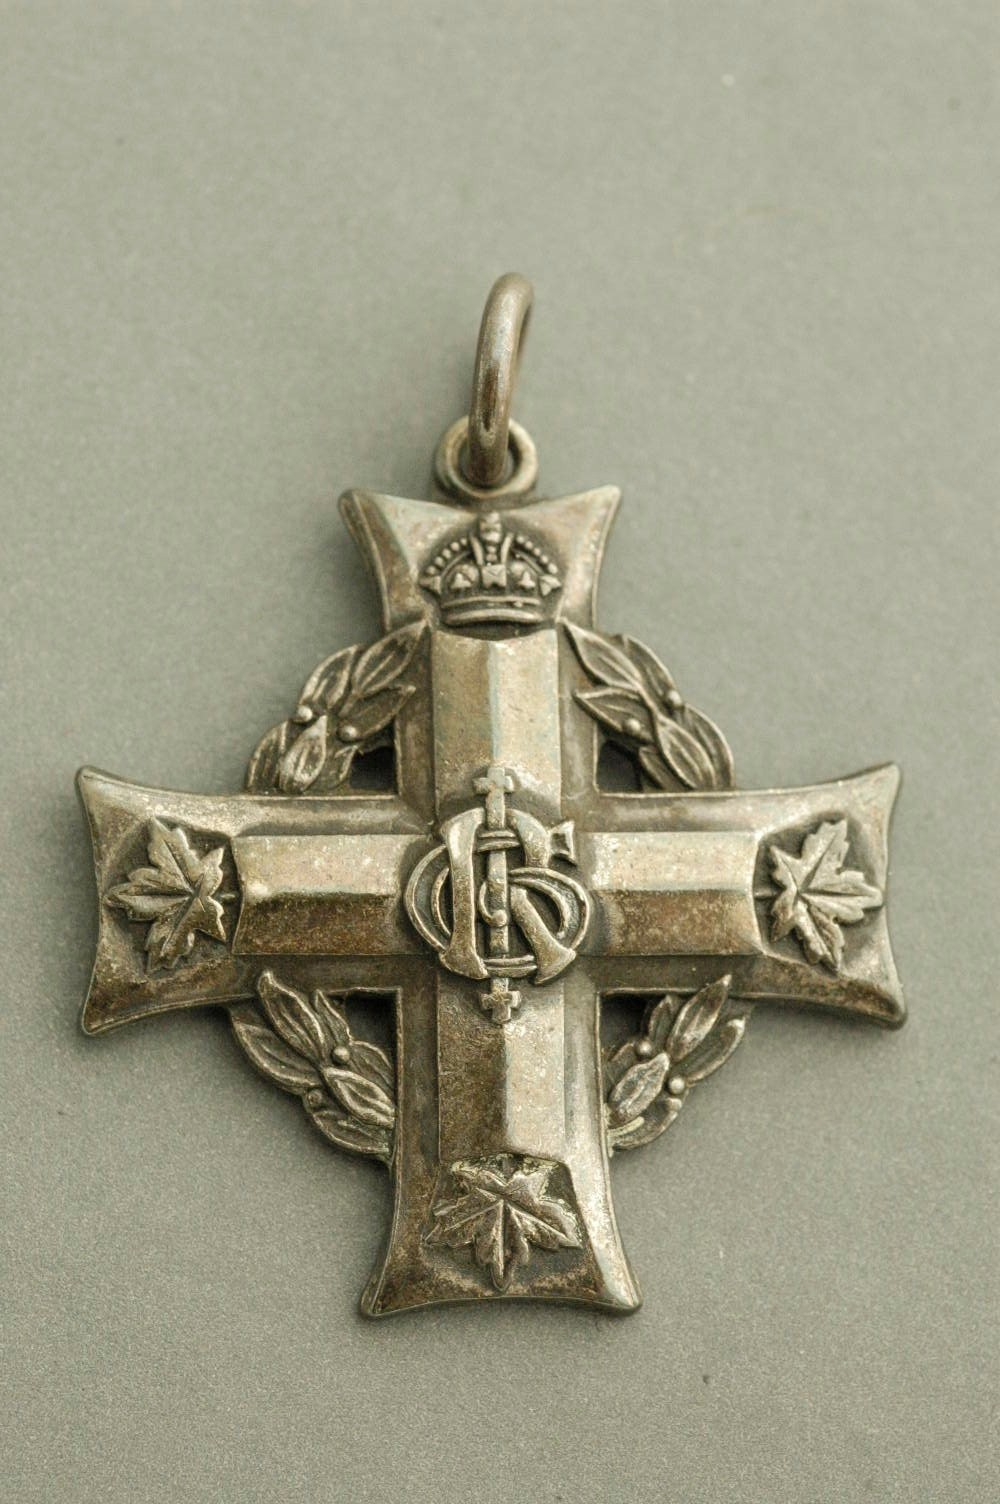 Memorial Cross– Submitted for the project, Operation: Picture Me